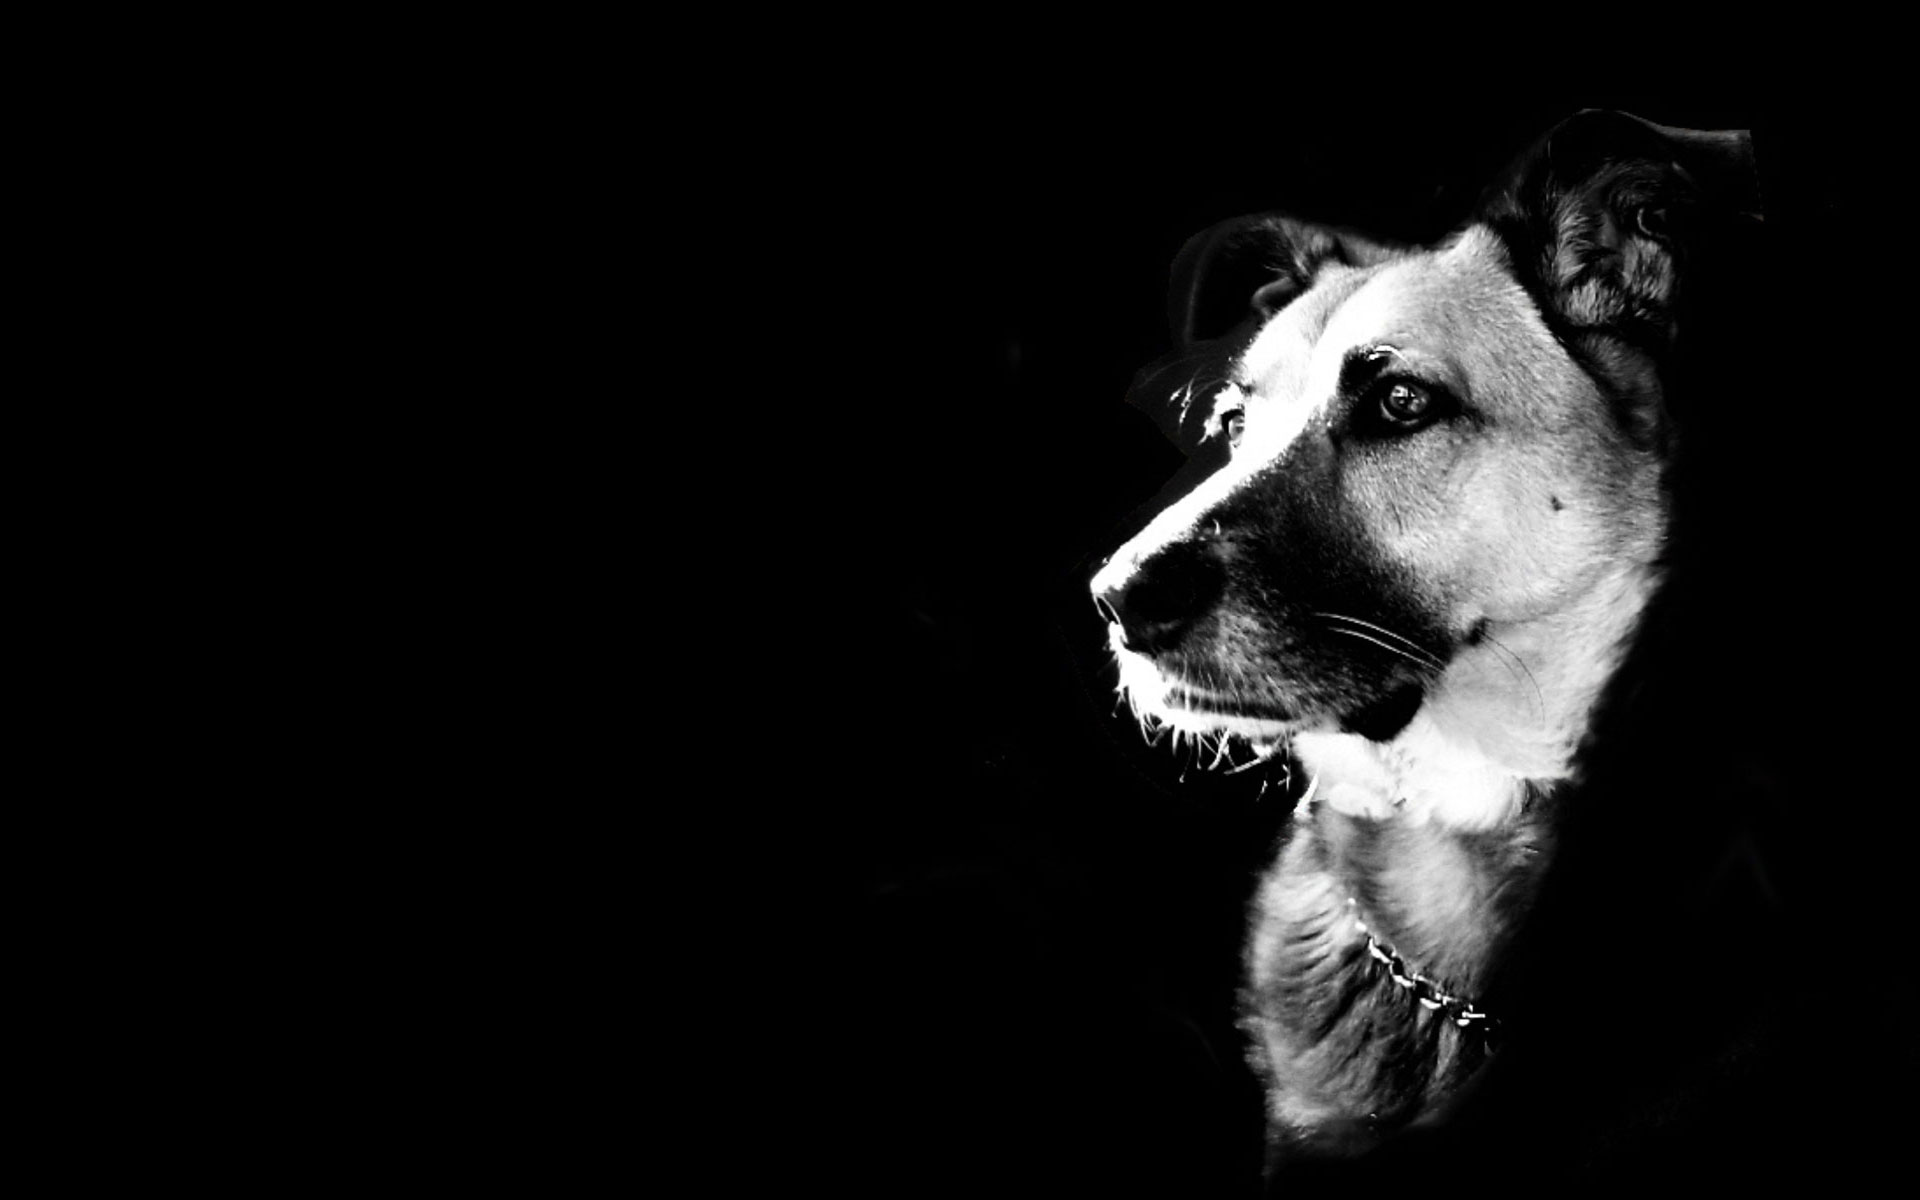 1920x1200 - Wallpaper Dogs Black and White 44